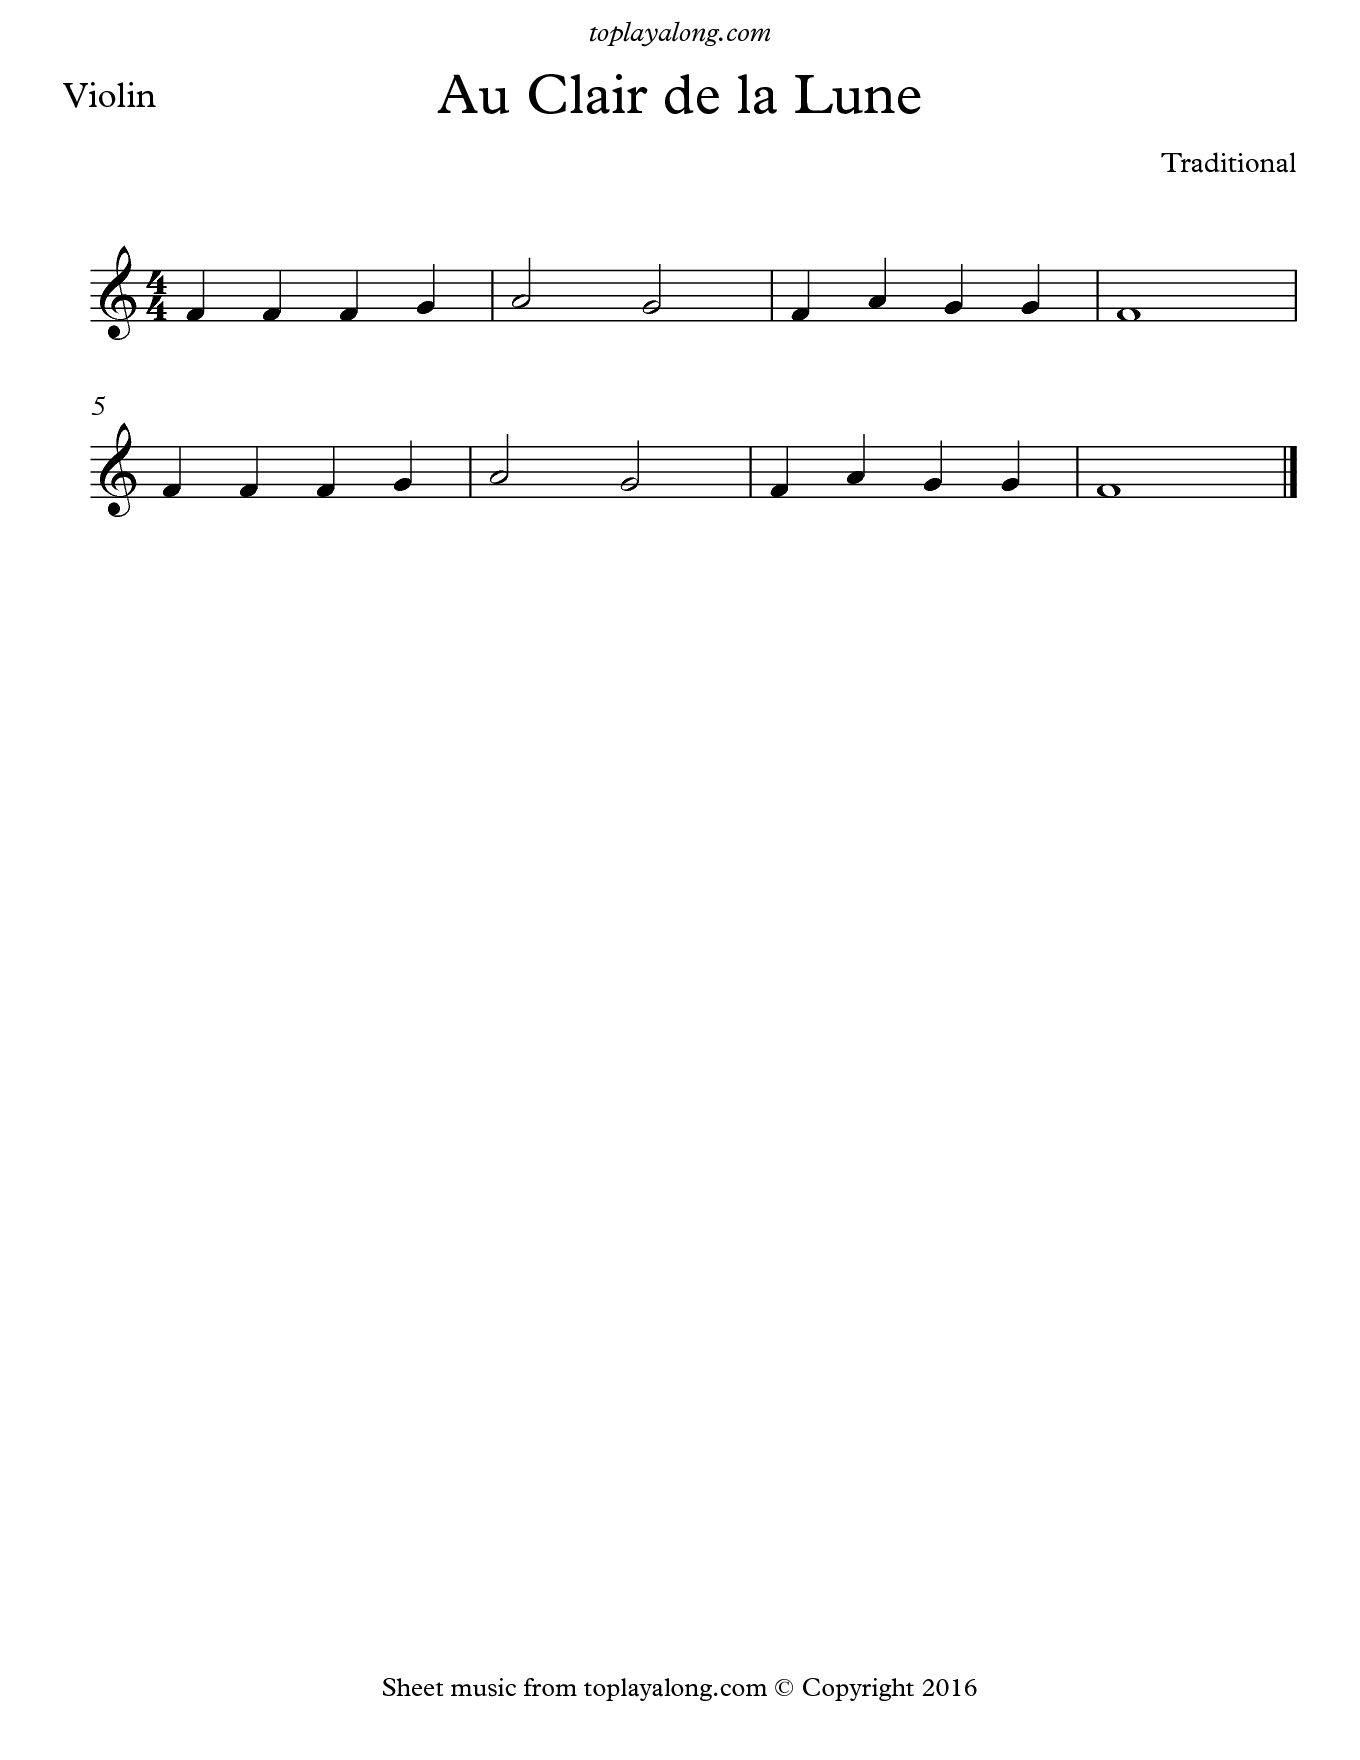 Au Clair de la Lune. Sheet music for Violin, page 1.